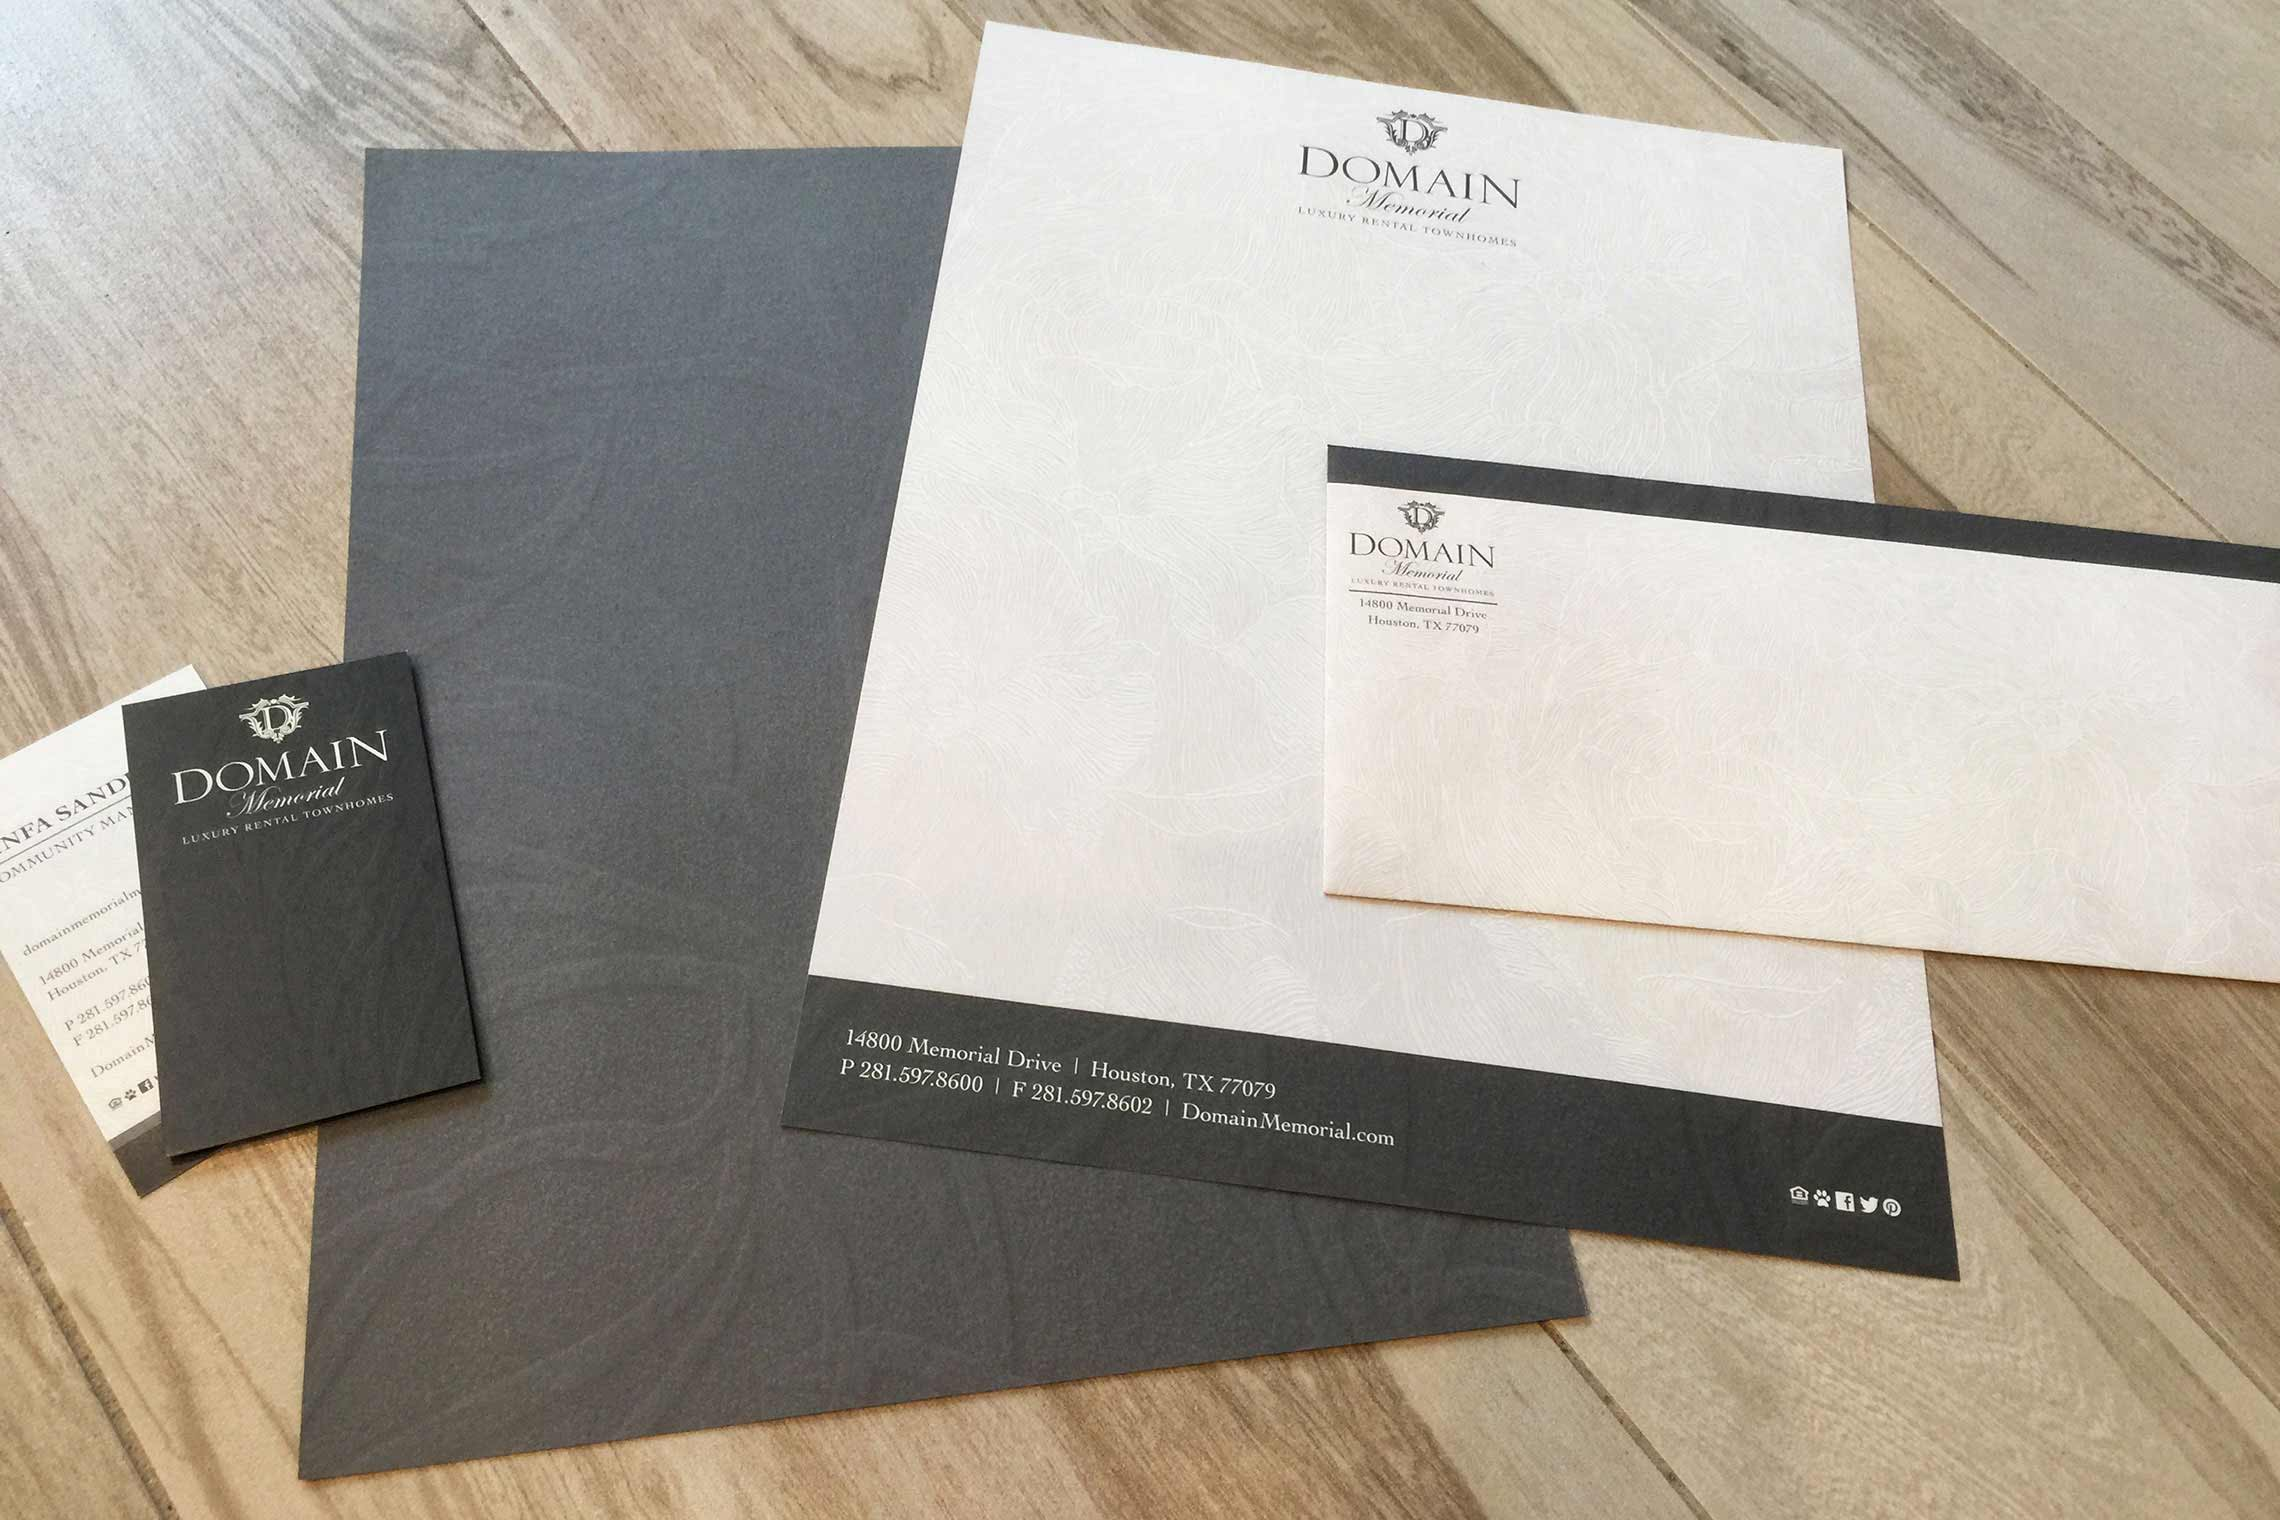 Domain Memorial Luxury Rental Townhomes - Business Card, Letterhead and Envelope